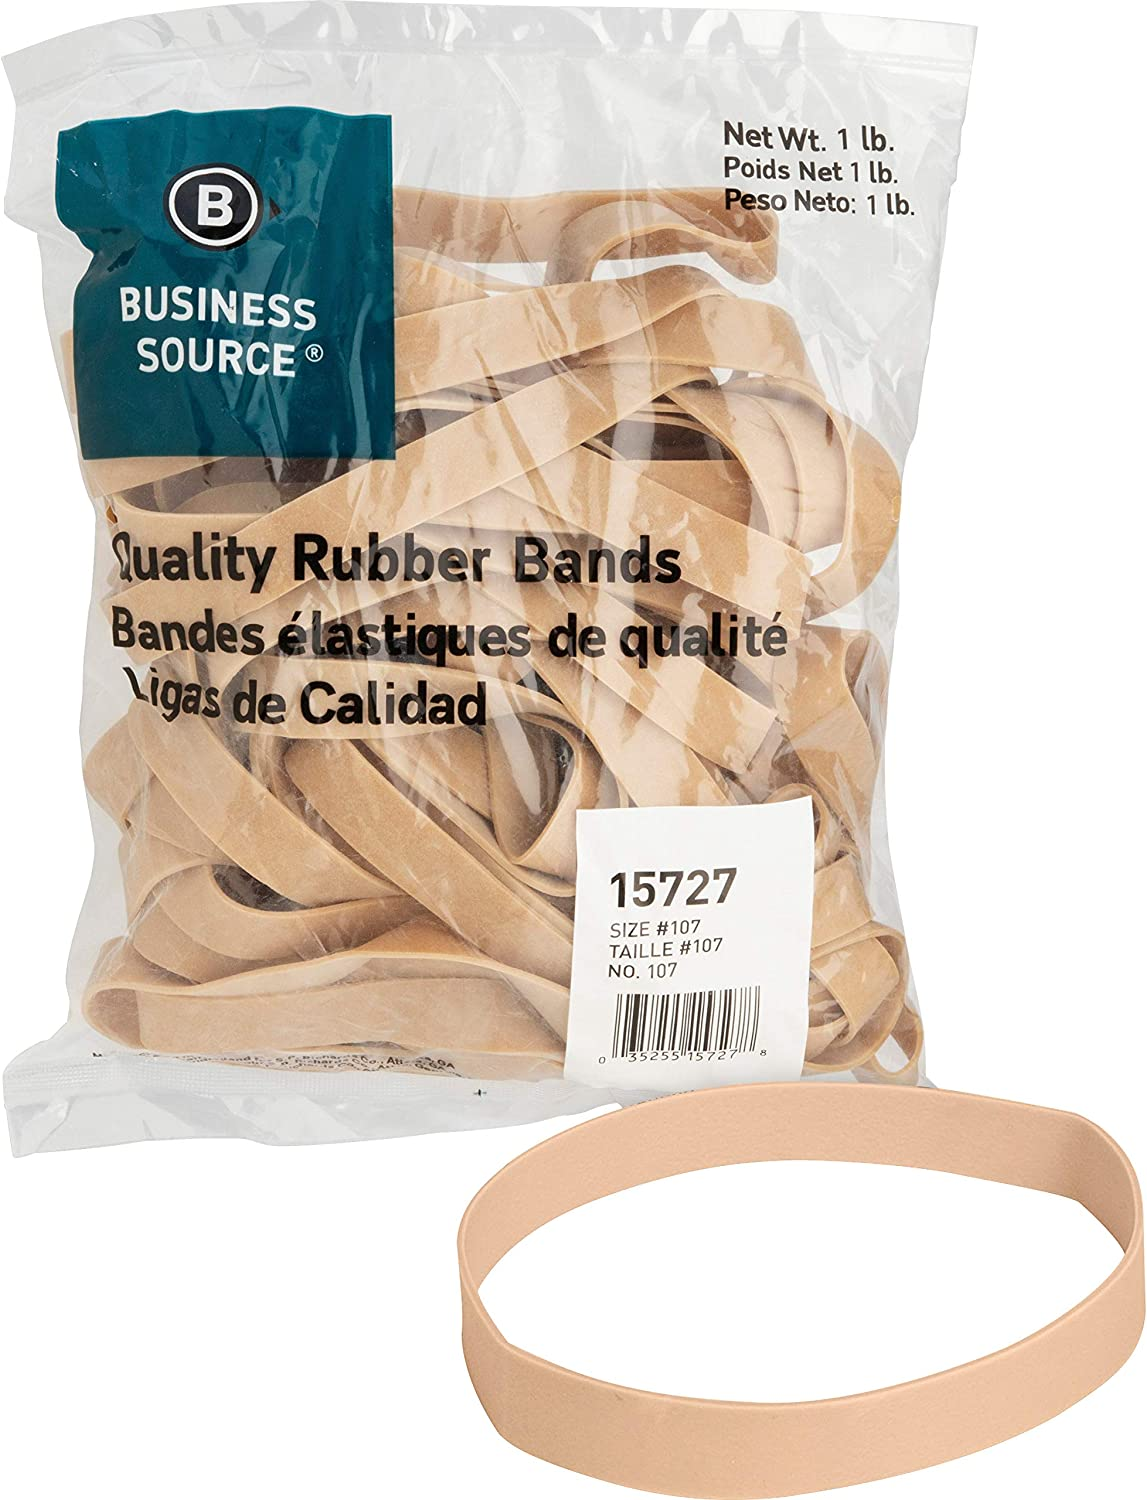 Business Source Size 107 Rubber Bands - 1 lb. Bag (15727), 40 Count